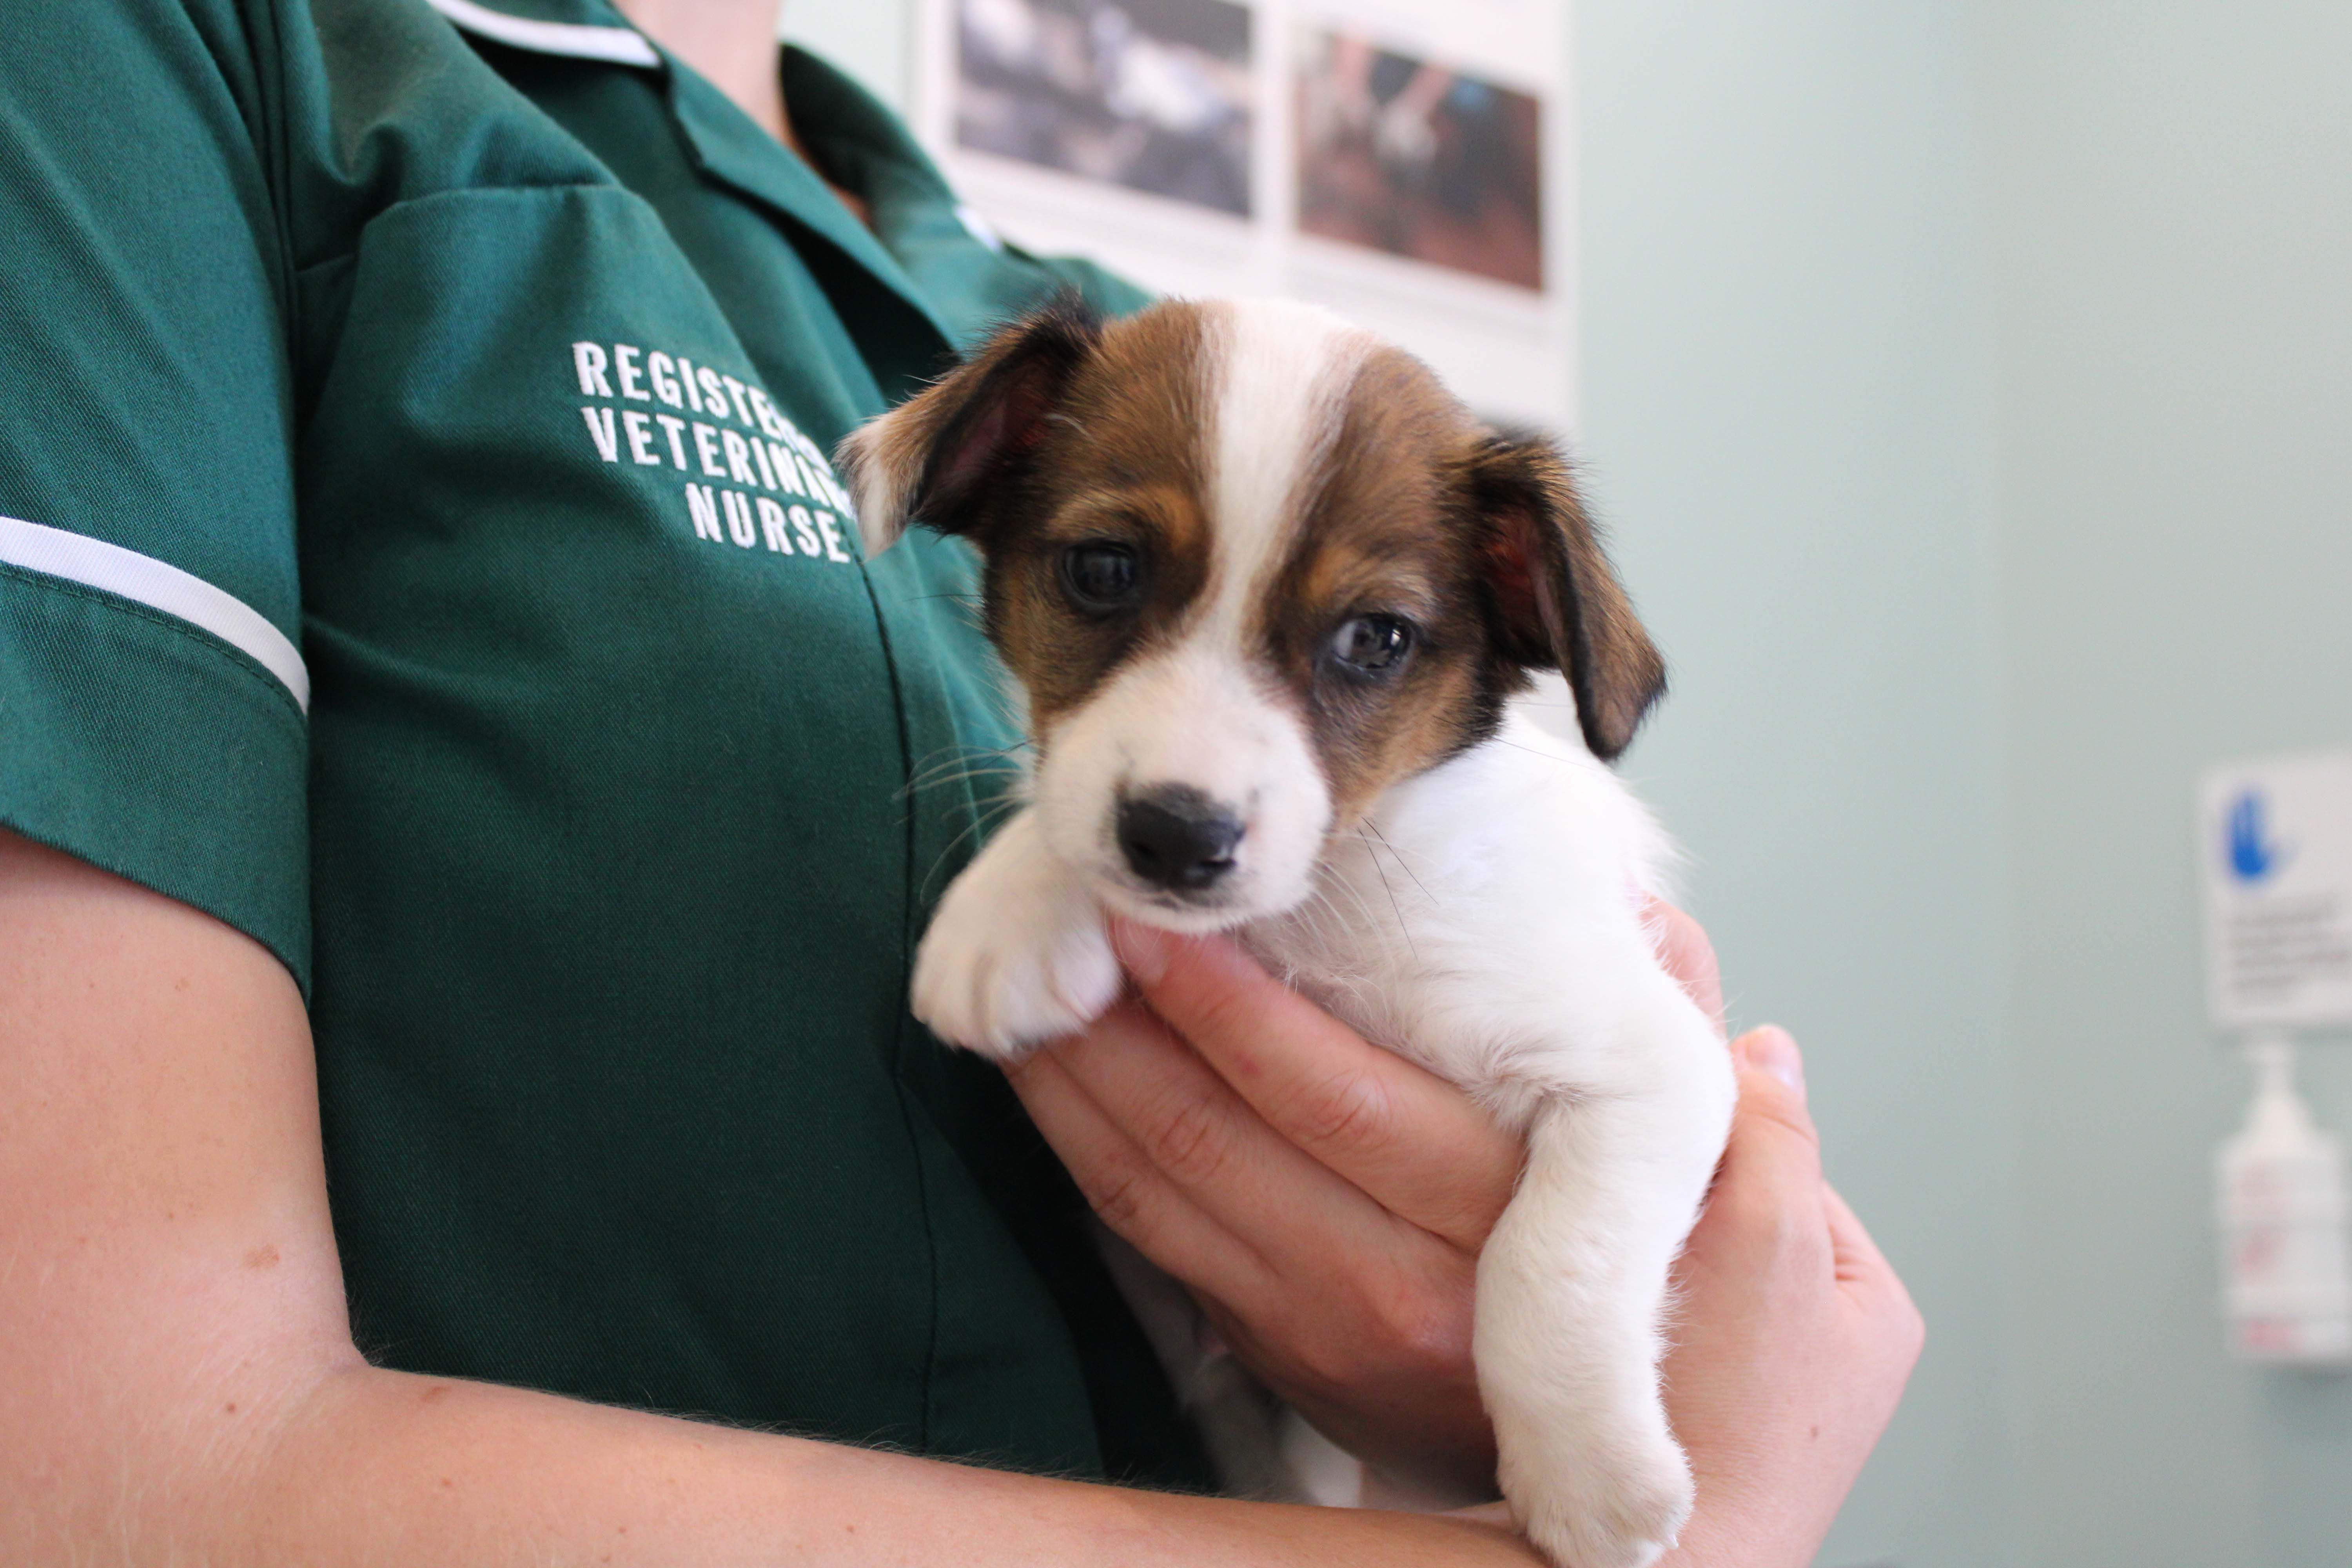 Happy Ending For Six Week Old Jack Russell Puppy Abandoned After Being Bought Online